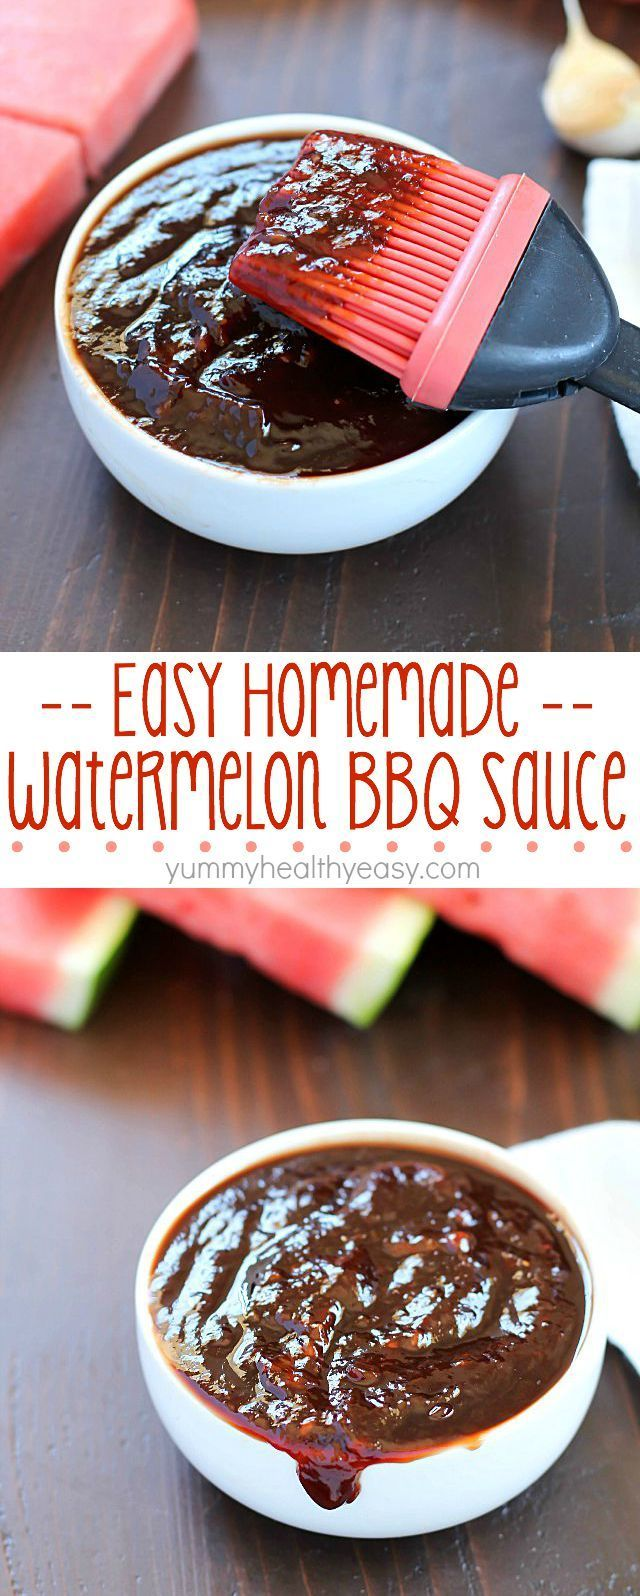 Watermelon Homemade BBQ Sauce it's quick, simple to make